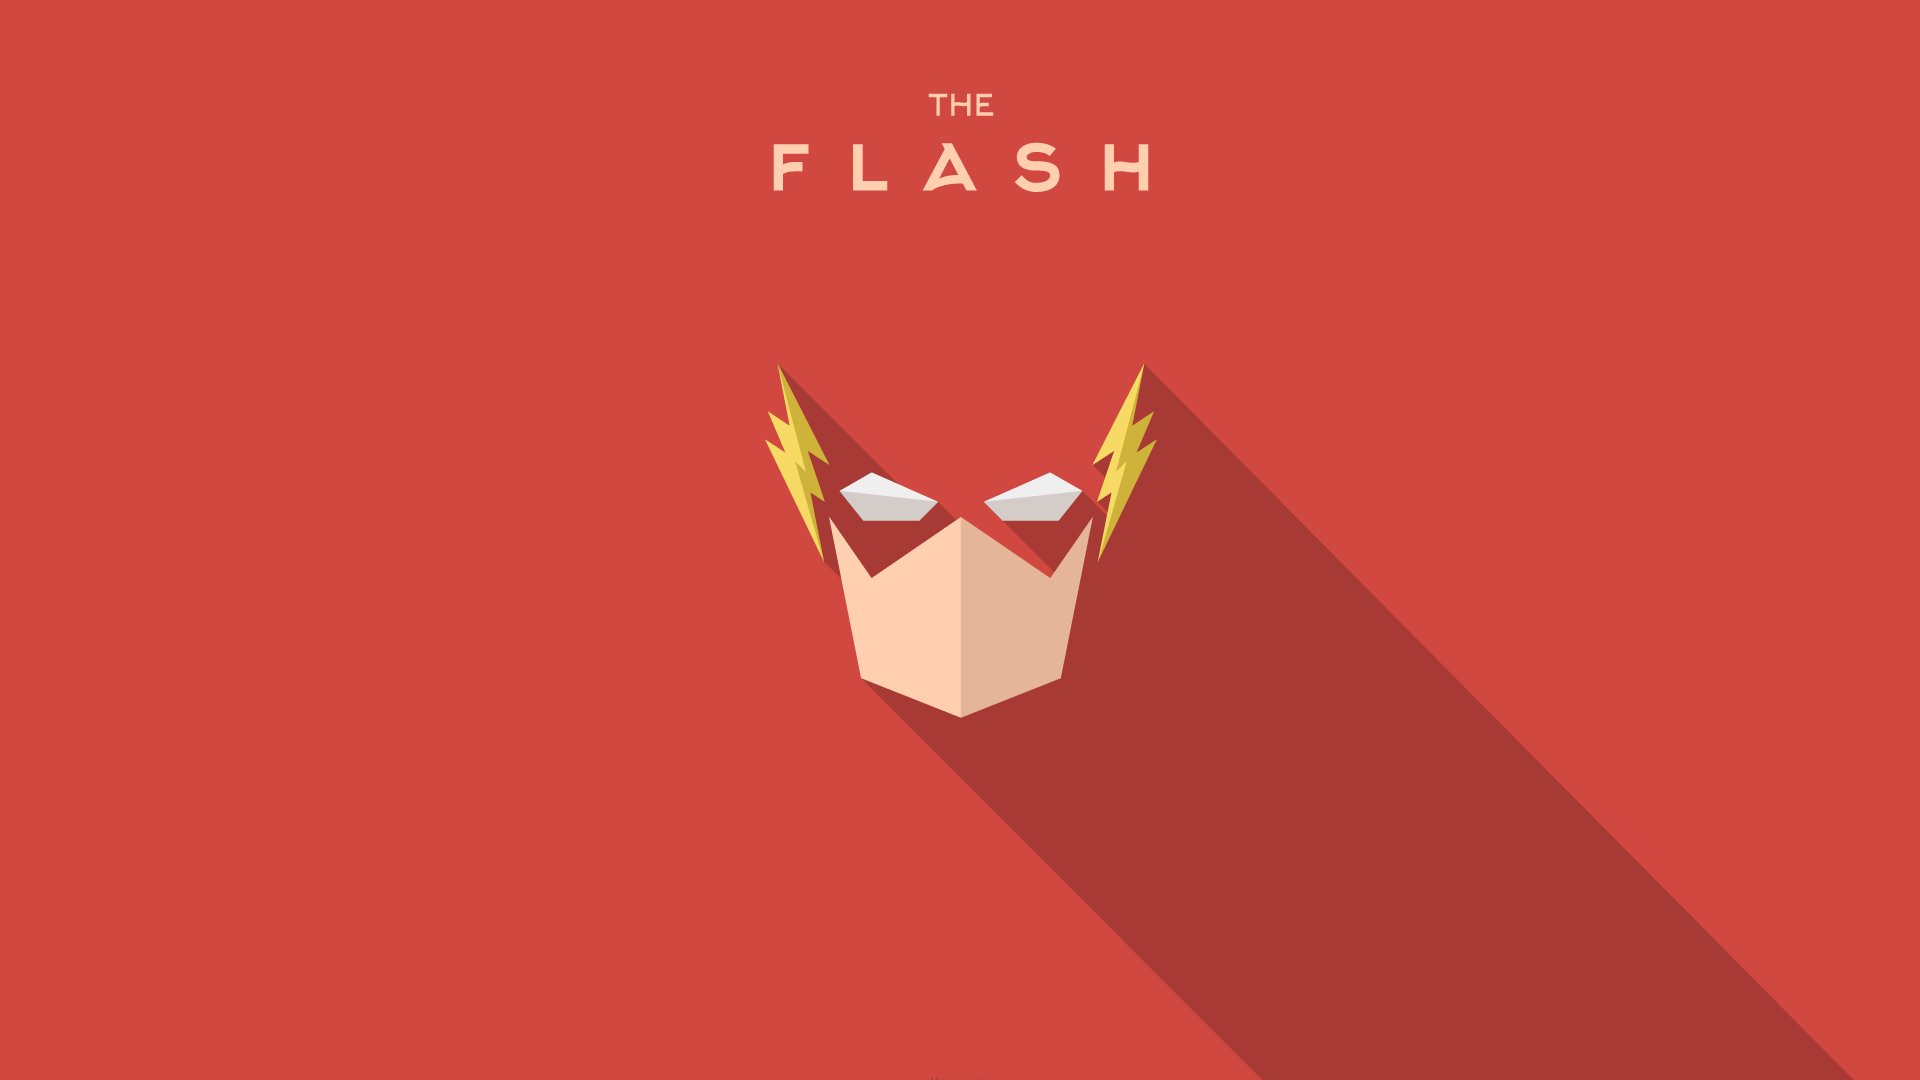 The Flash Simple Minimalism